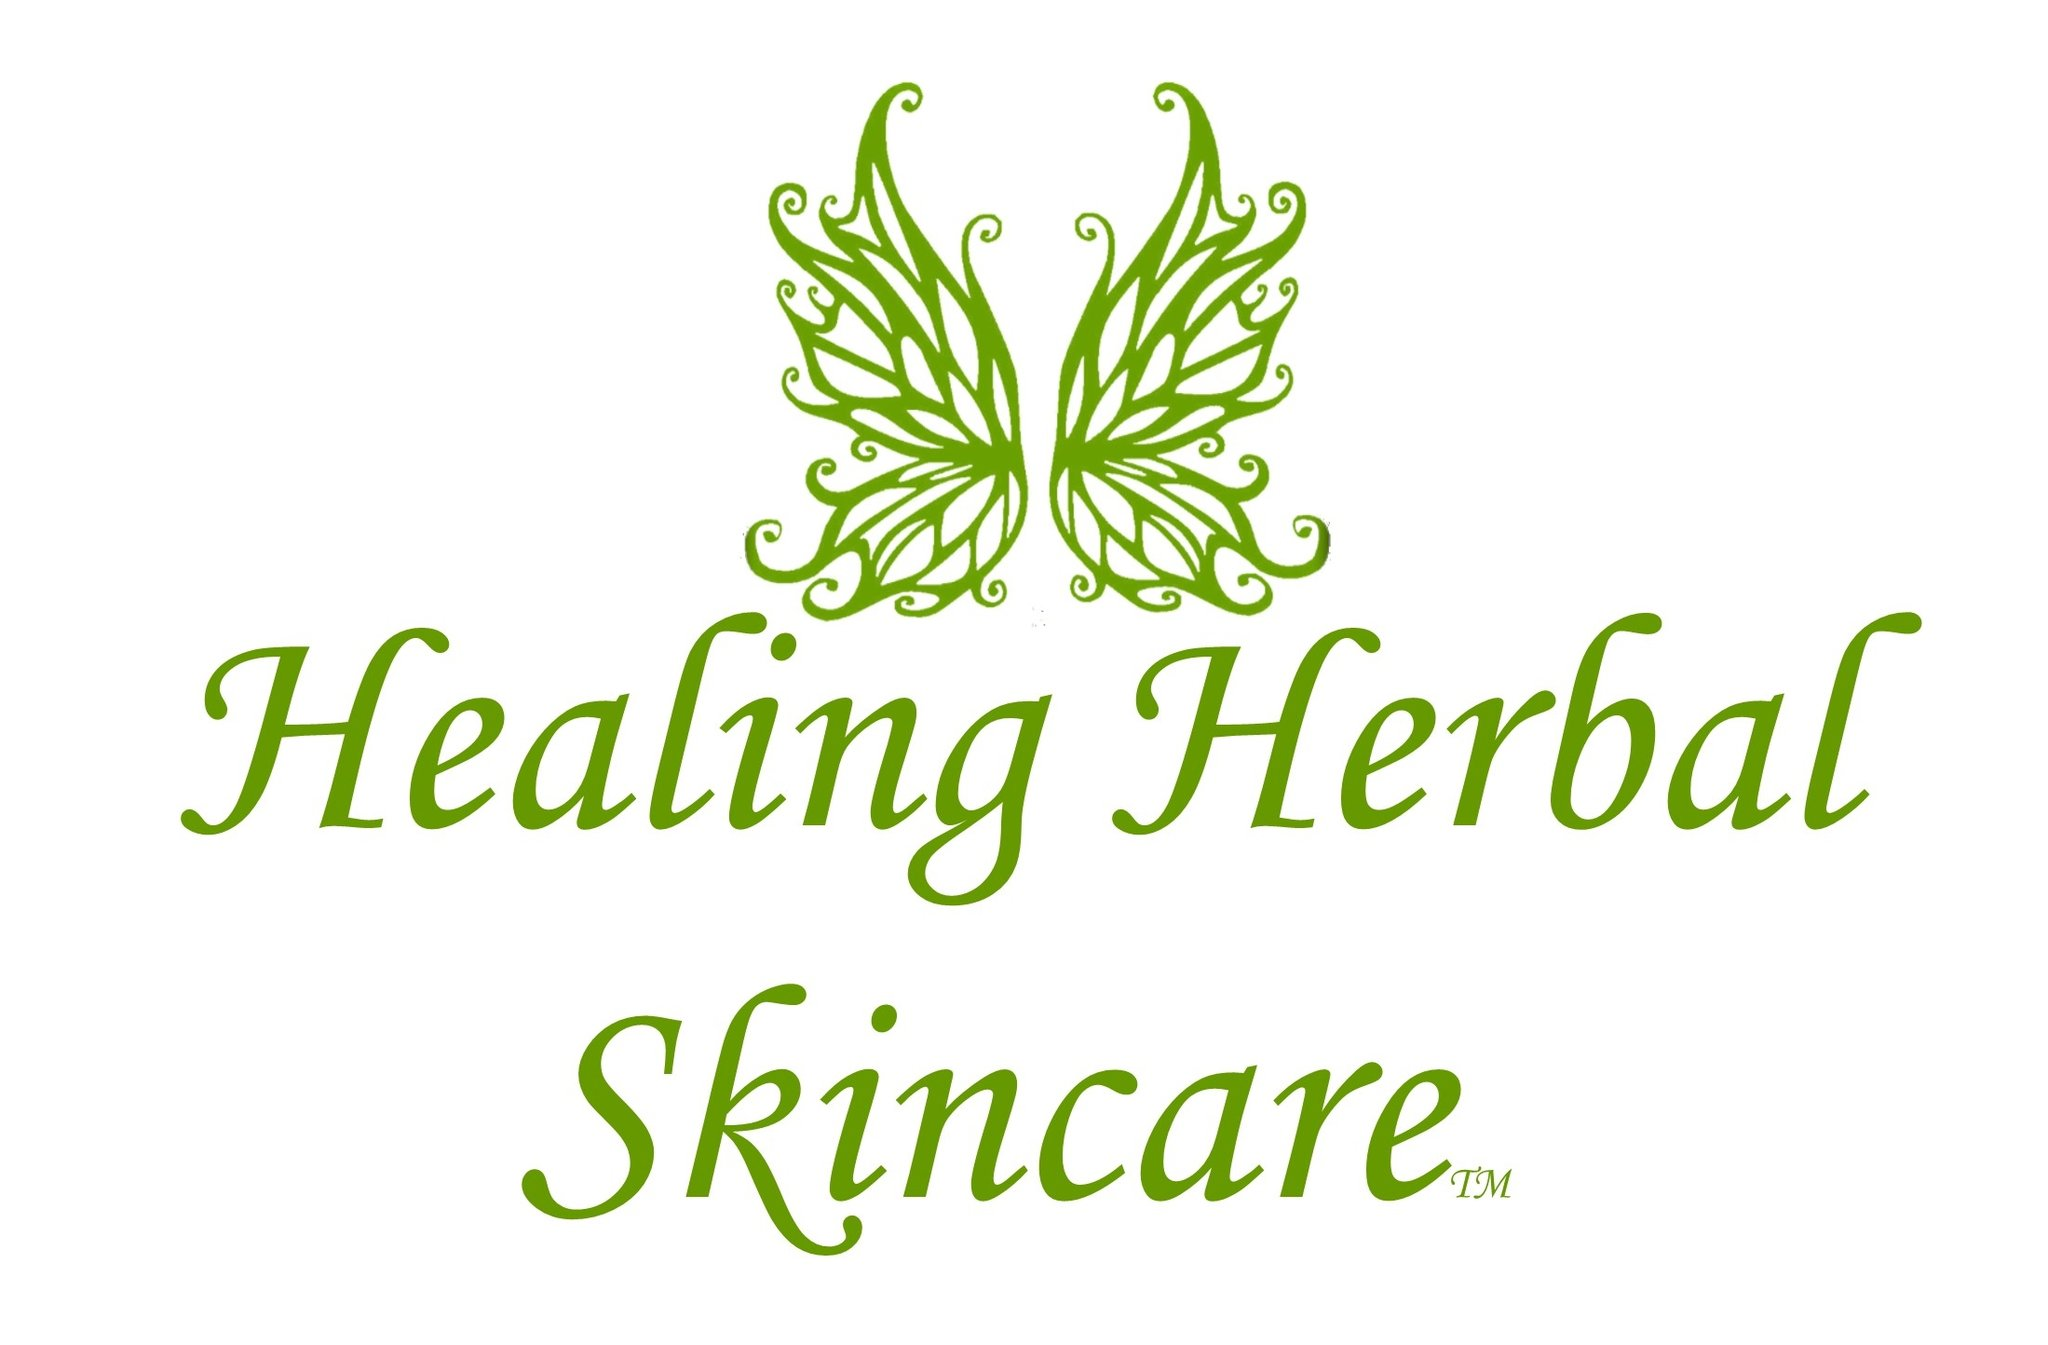 Skin Care - Image via: https://healingherbalskincare.com/